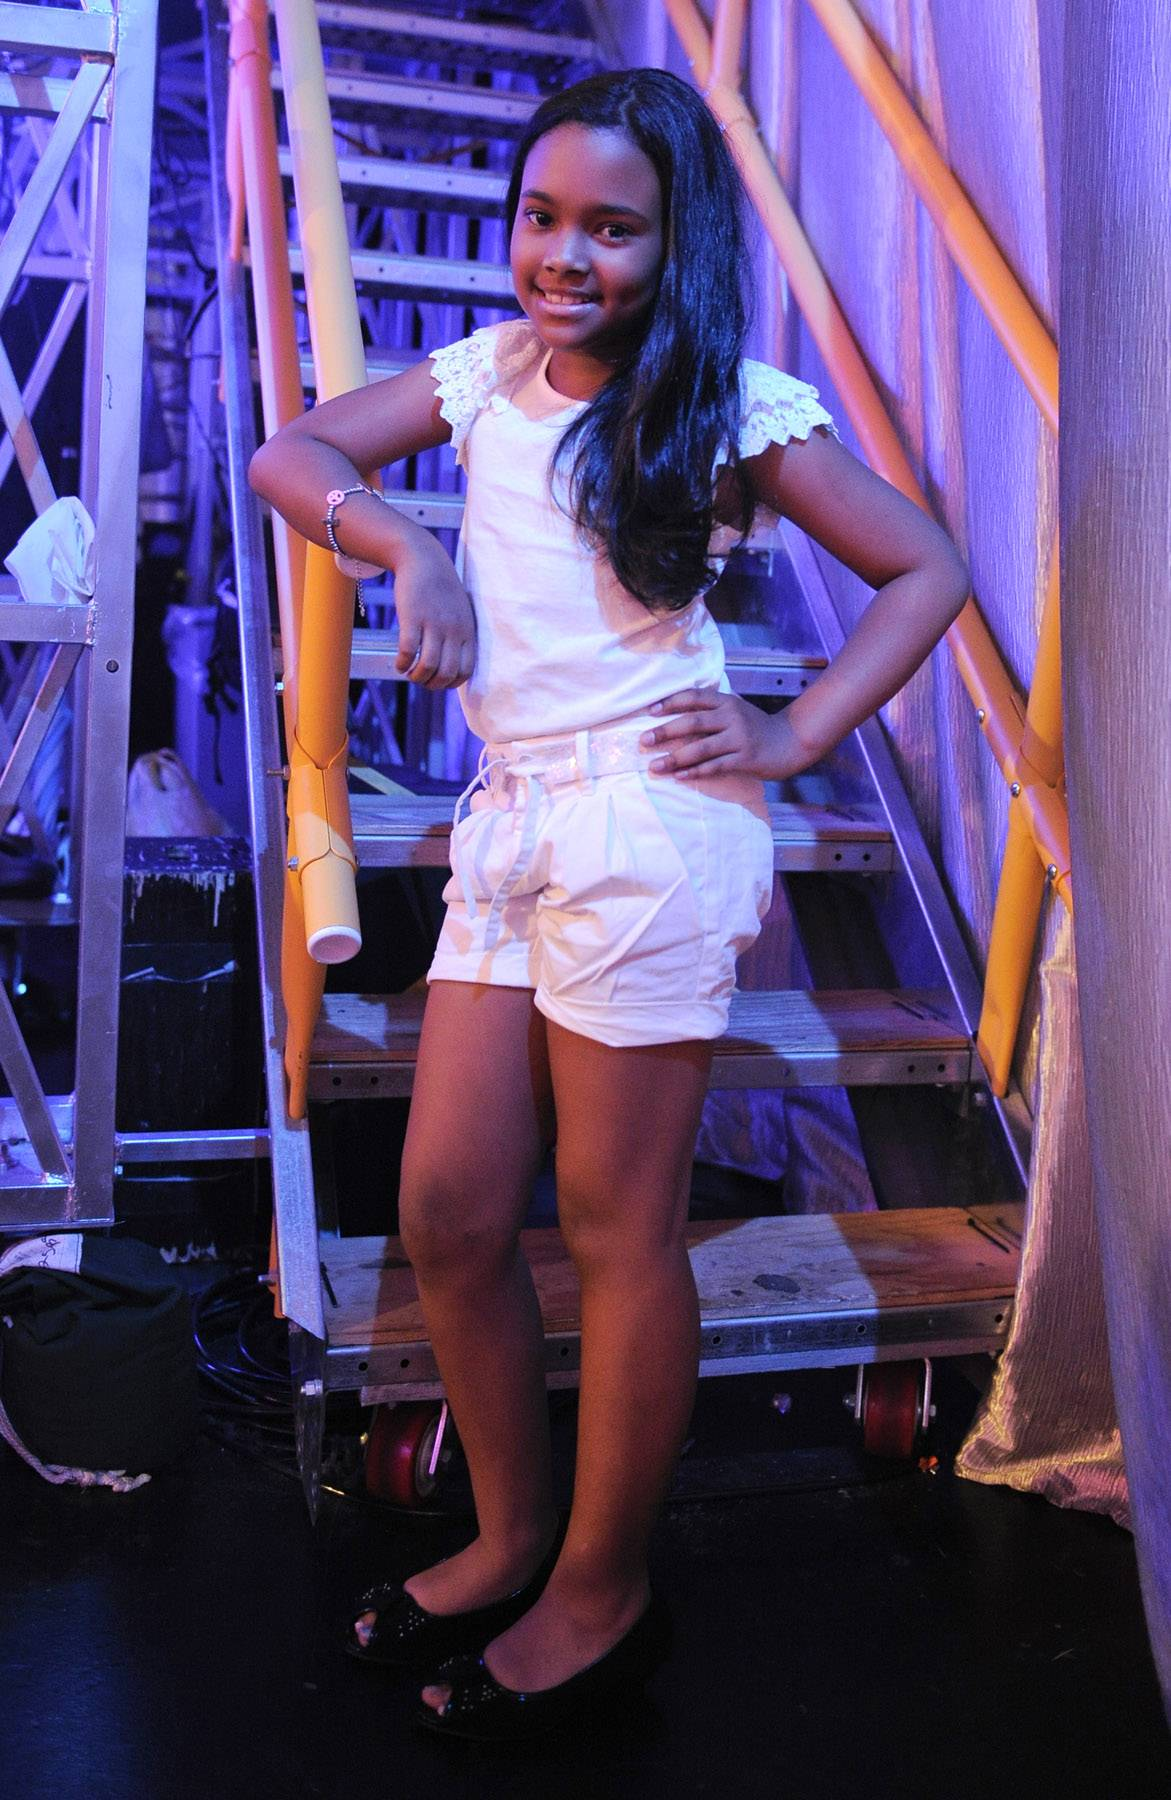 Lil girl posing. - Briana, who appears in the latest Lil Niqo video at 106 & Park, May 16, 2012. (Photo: John Ricard / BET)